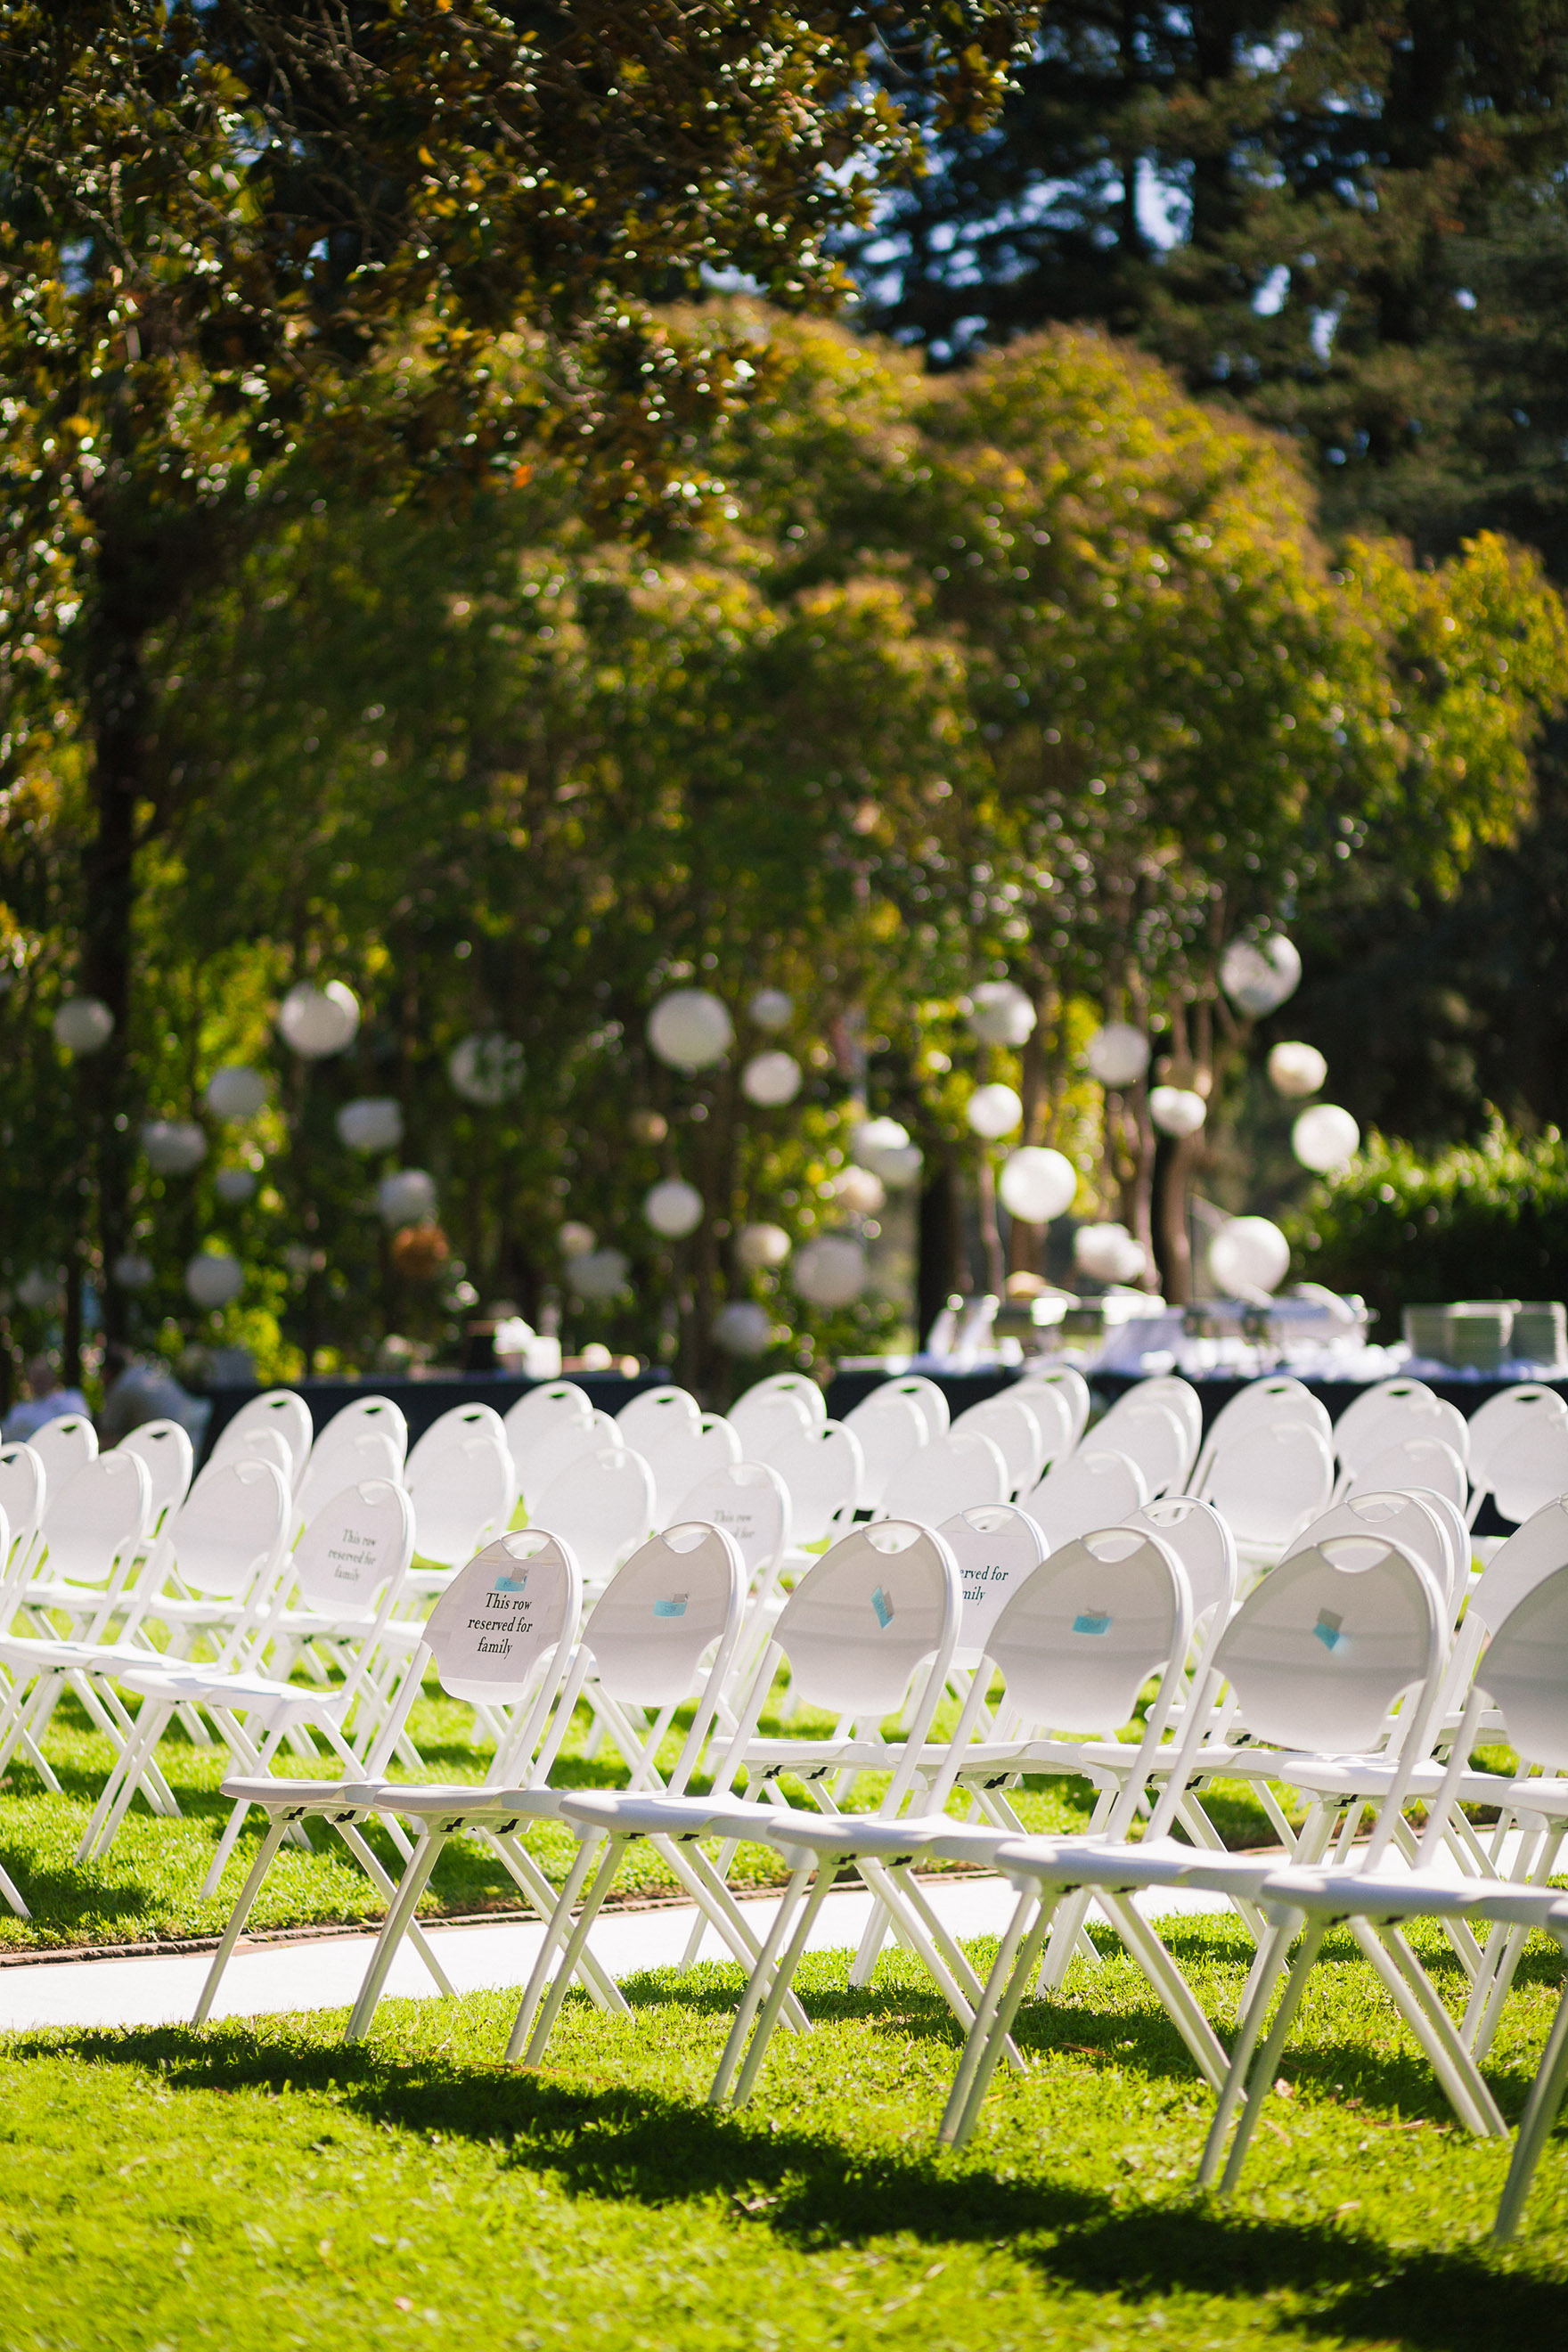 outdoors in the summer sun the guest seating seats chairs wait for the highlands park ceremony to start begin in the green fields grass lawn at a highlands park wedding the perfect felton wedding venue santa cruz wedding venue redwood wedding venue santa cruz wedding photographer